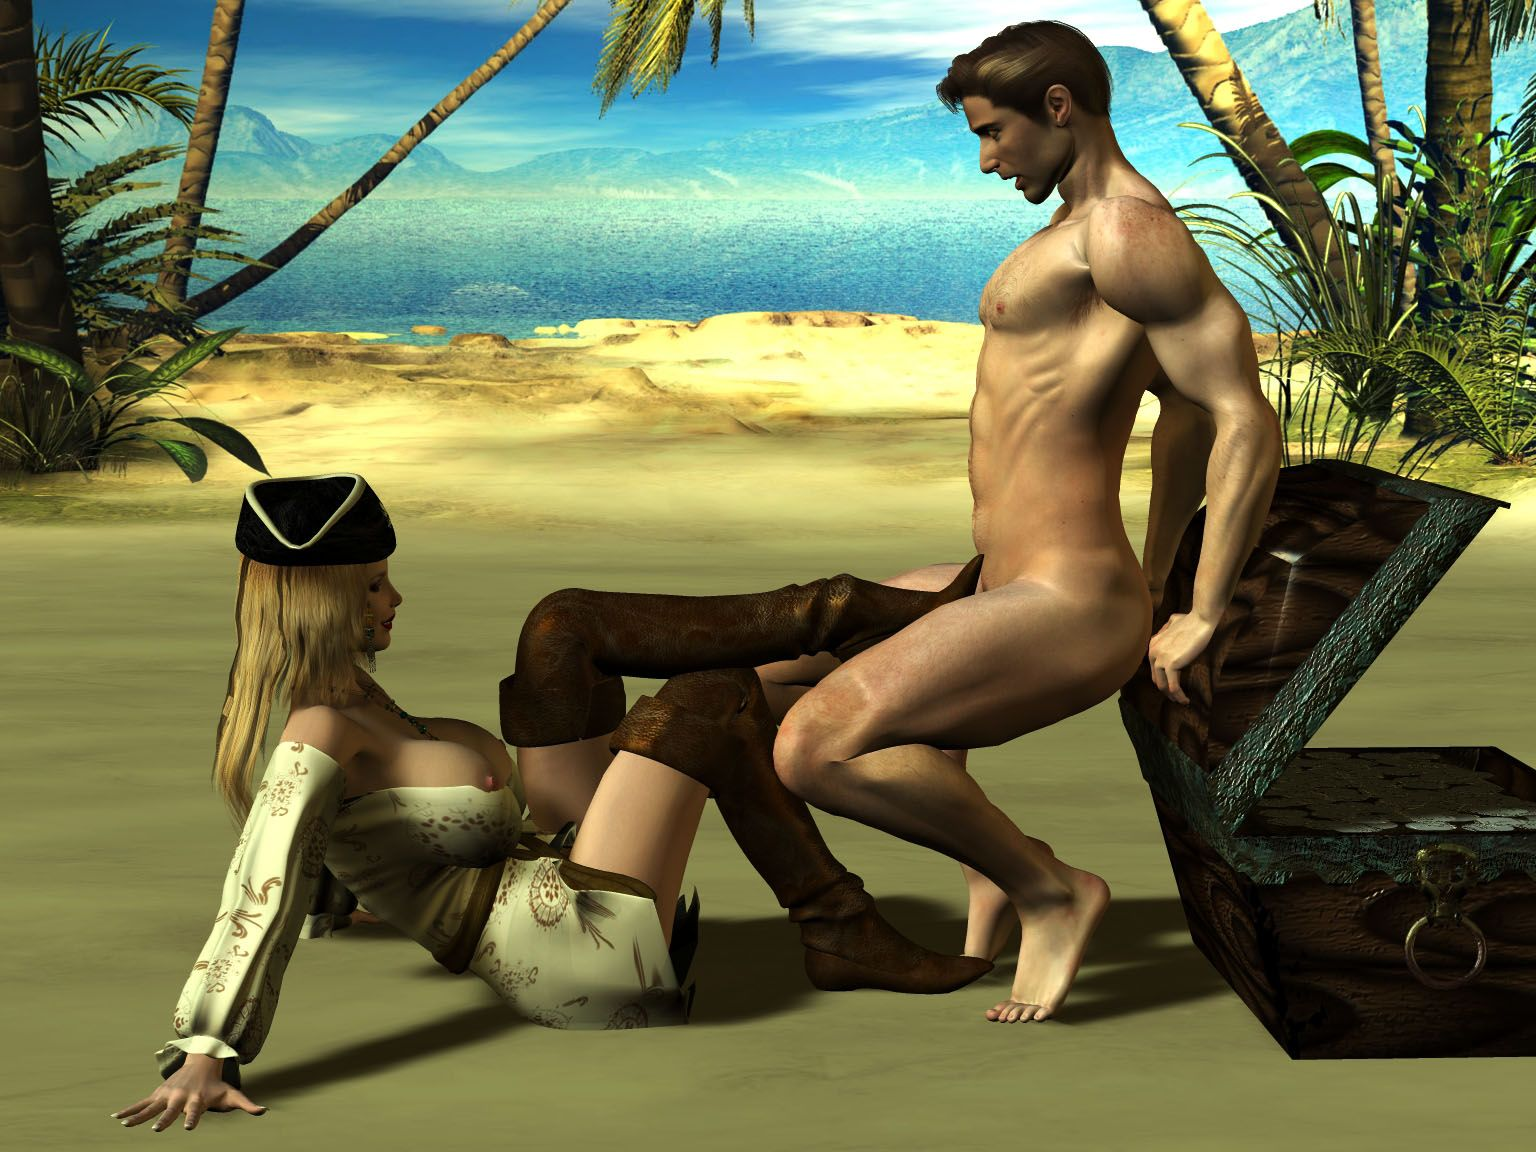 Porn pirate 3d sex xxx download